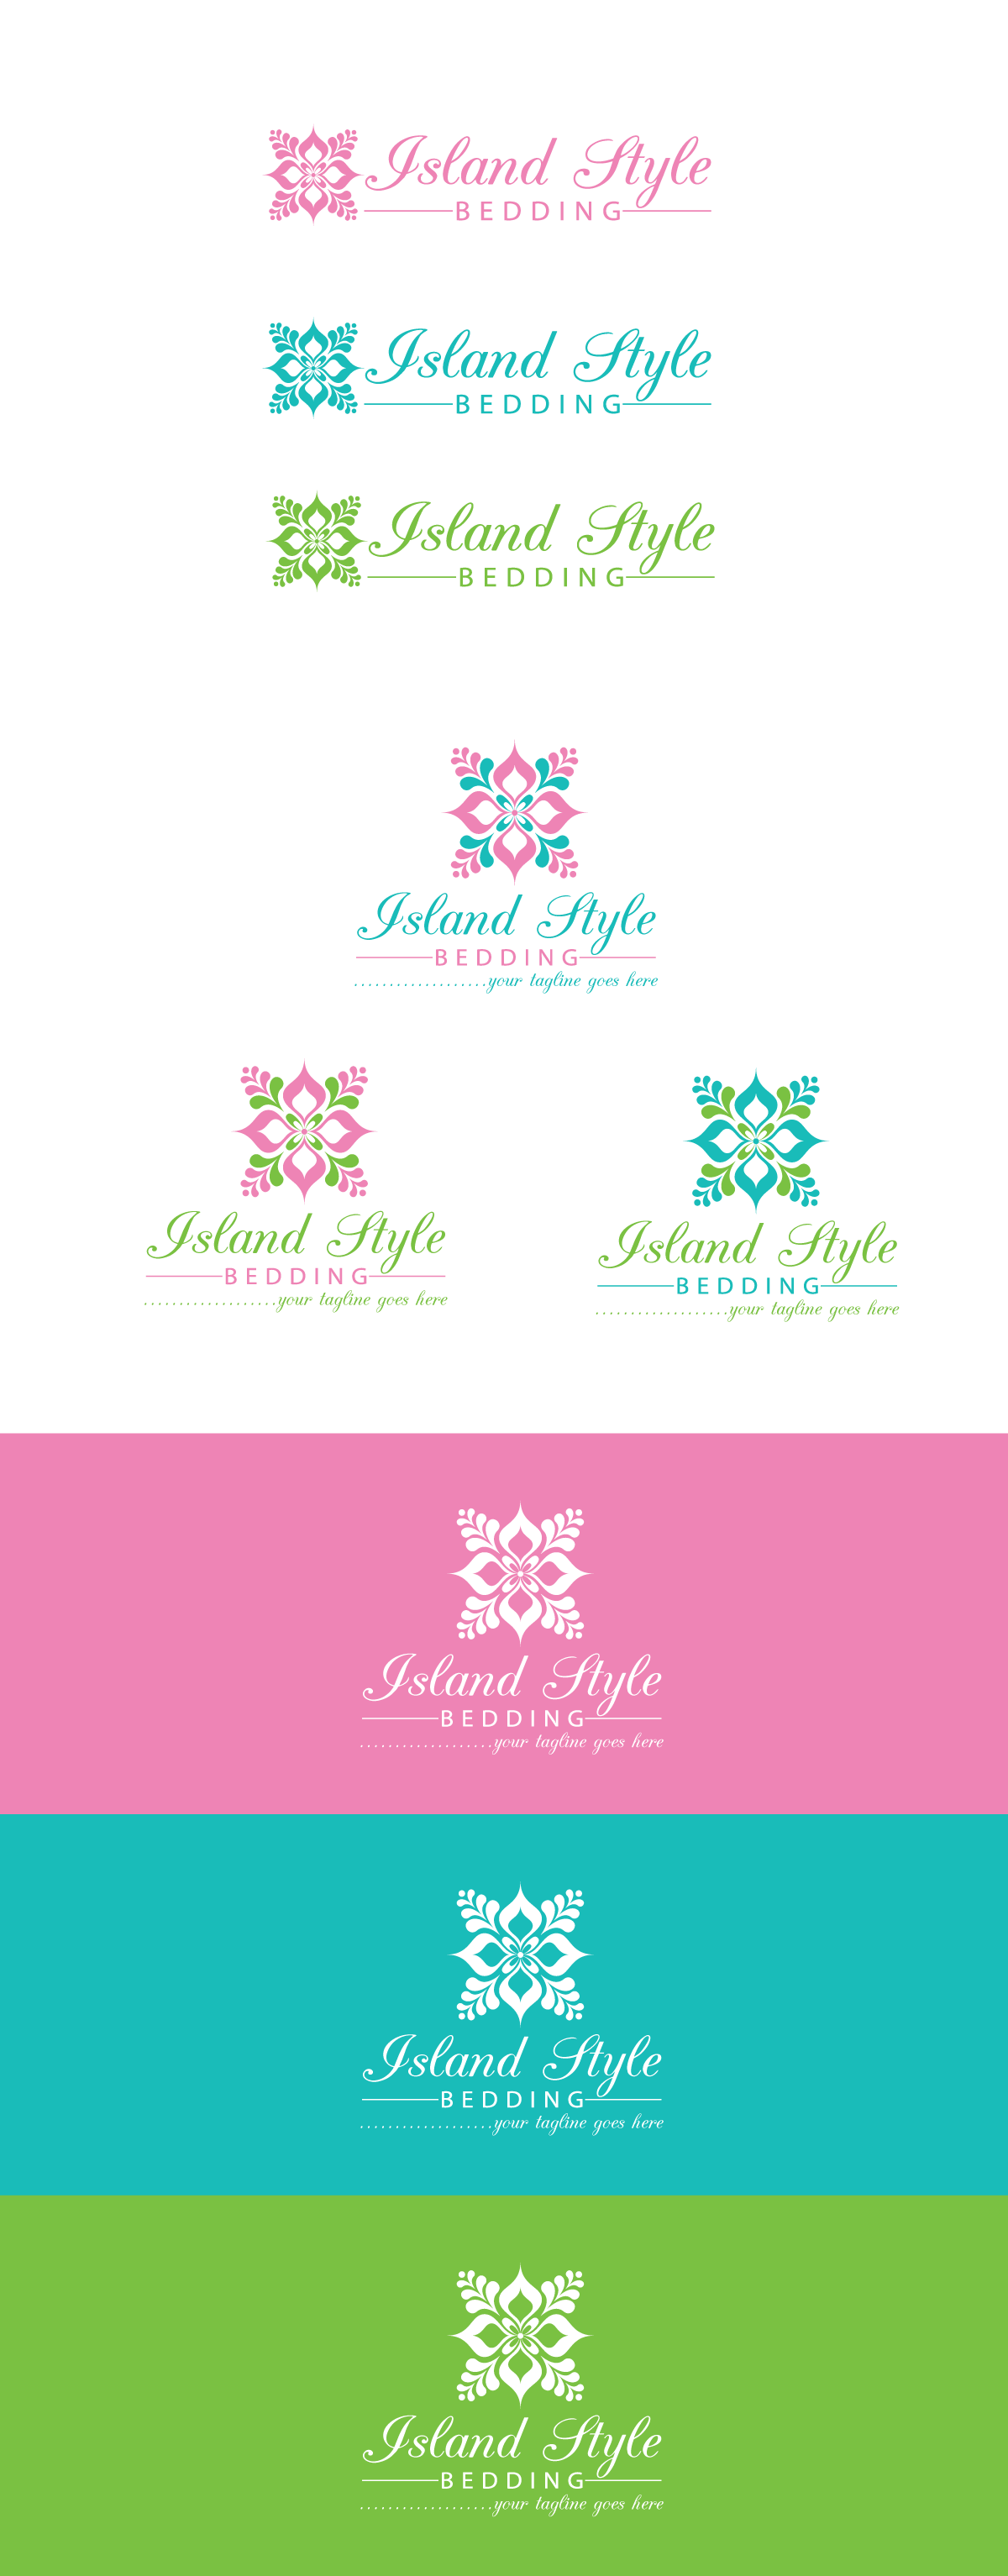 Create a Hawaiian/island inspired logo primarily for bedding, table & home decor